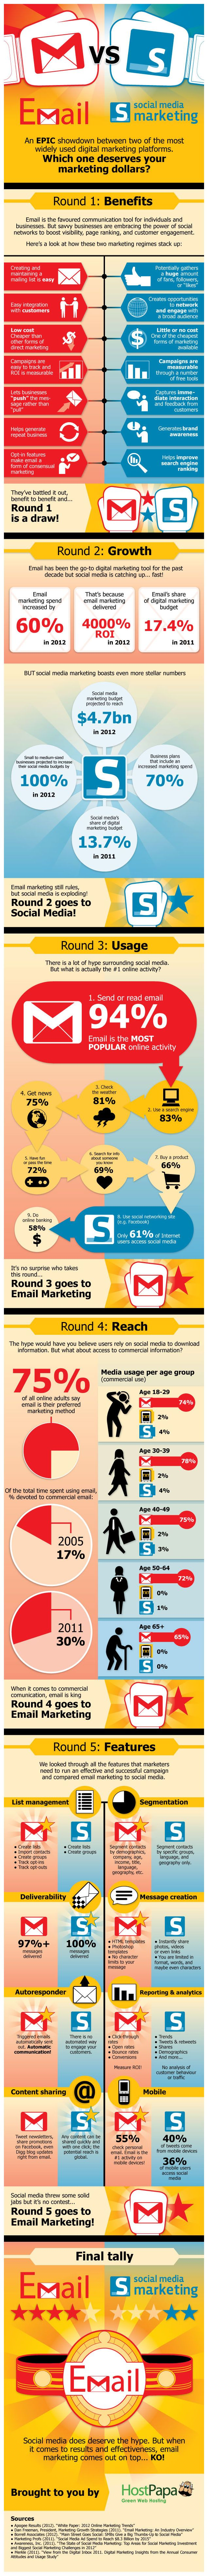 Email Vs Social Media Marketing – Which One Deserves Your Dollars?: Digital Marketing, Social Media Marketing, Media Infographic, Email Marketing, Emailmarket, Socialmedia, E Mail, Medium, Marketing Infographic